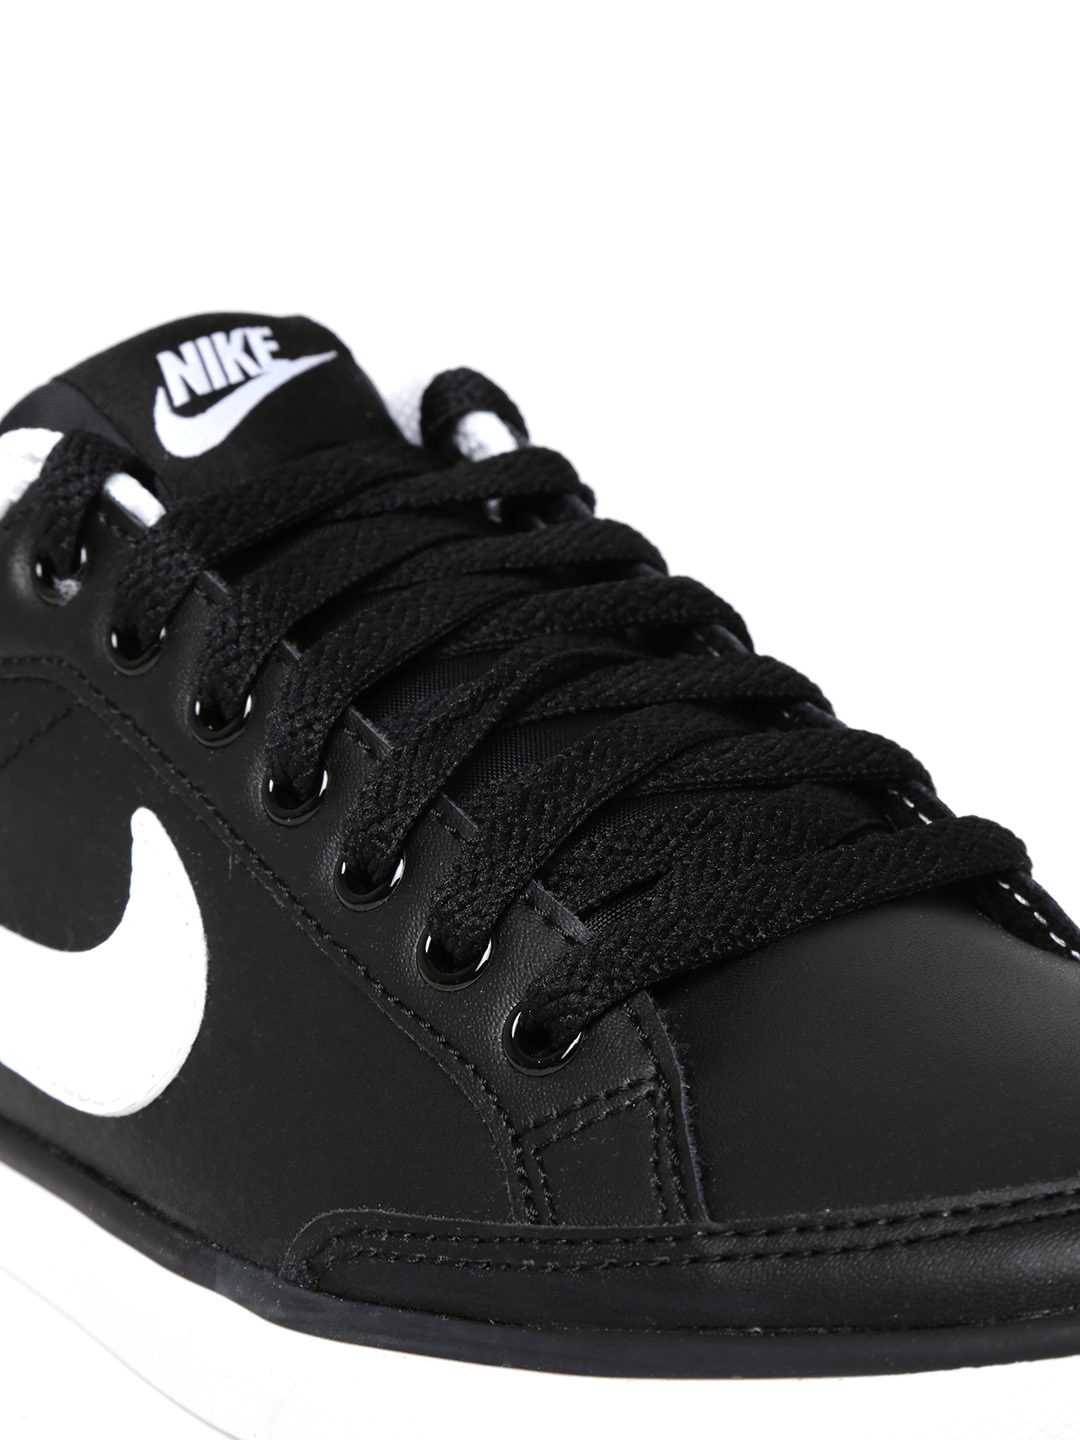 myntra nike black iii low leather casual shoes